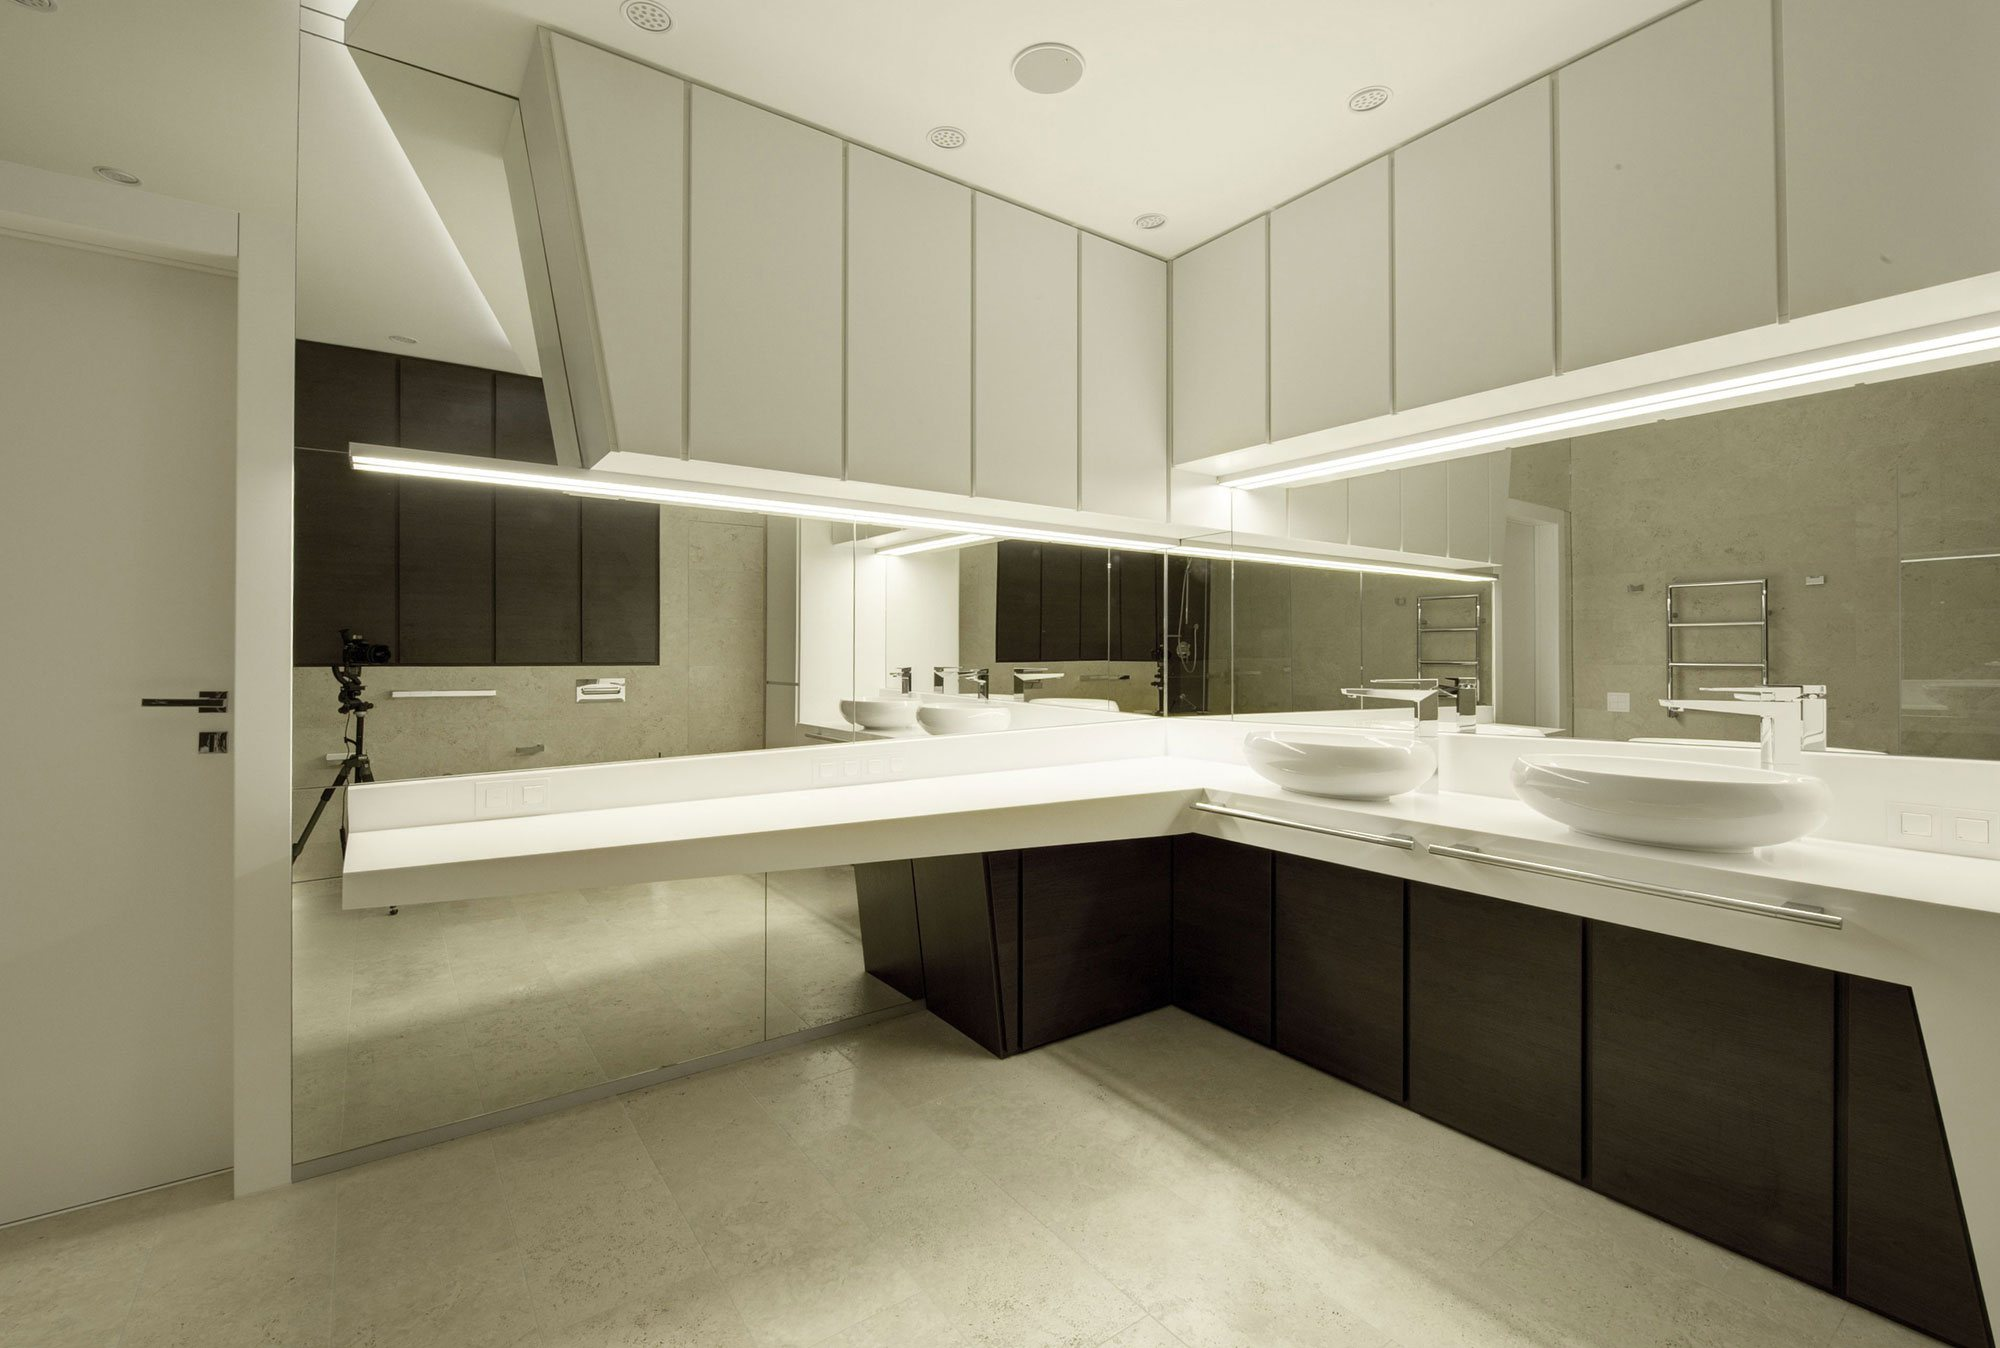 Apartment-Renovation-in-Moscow-11